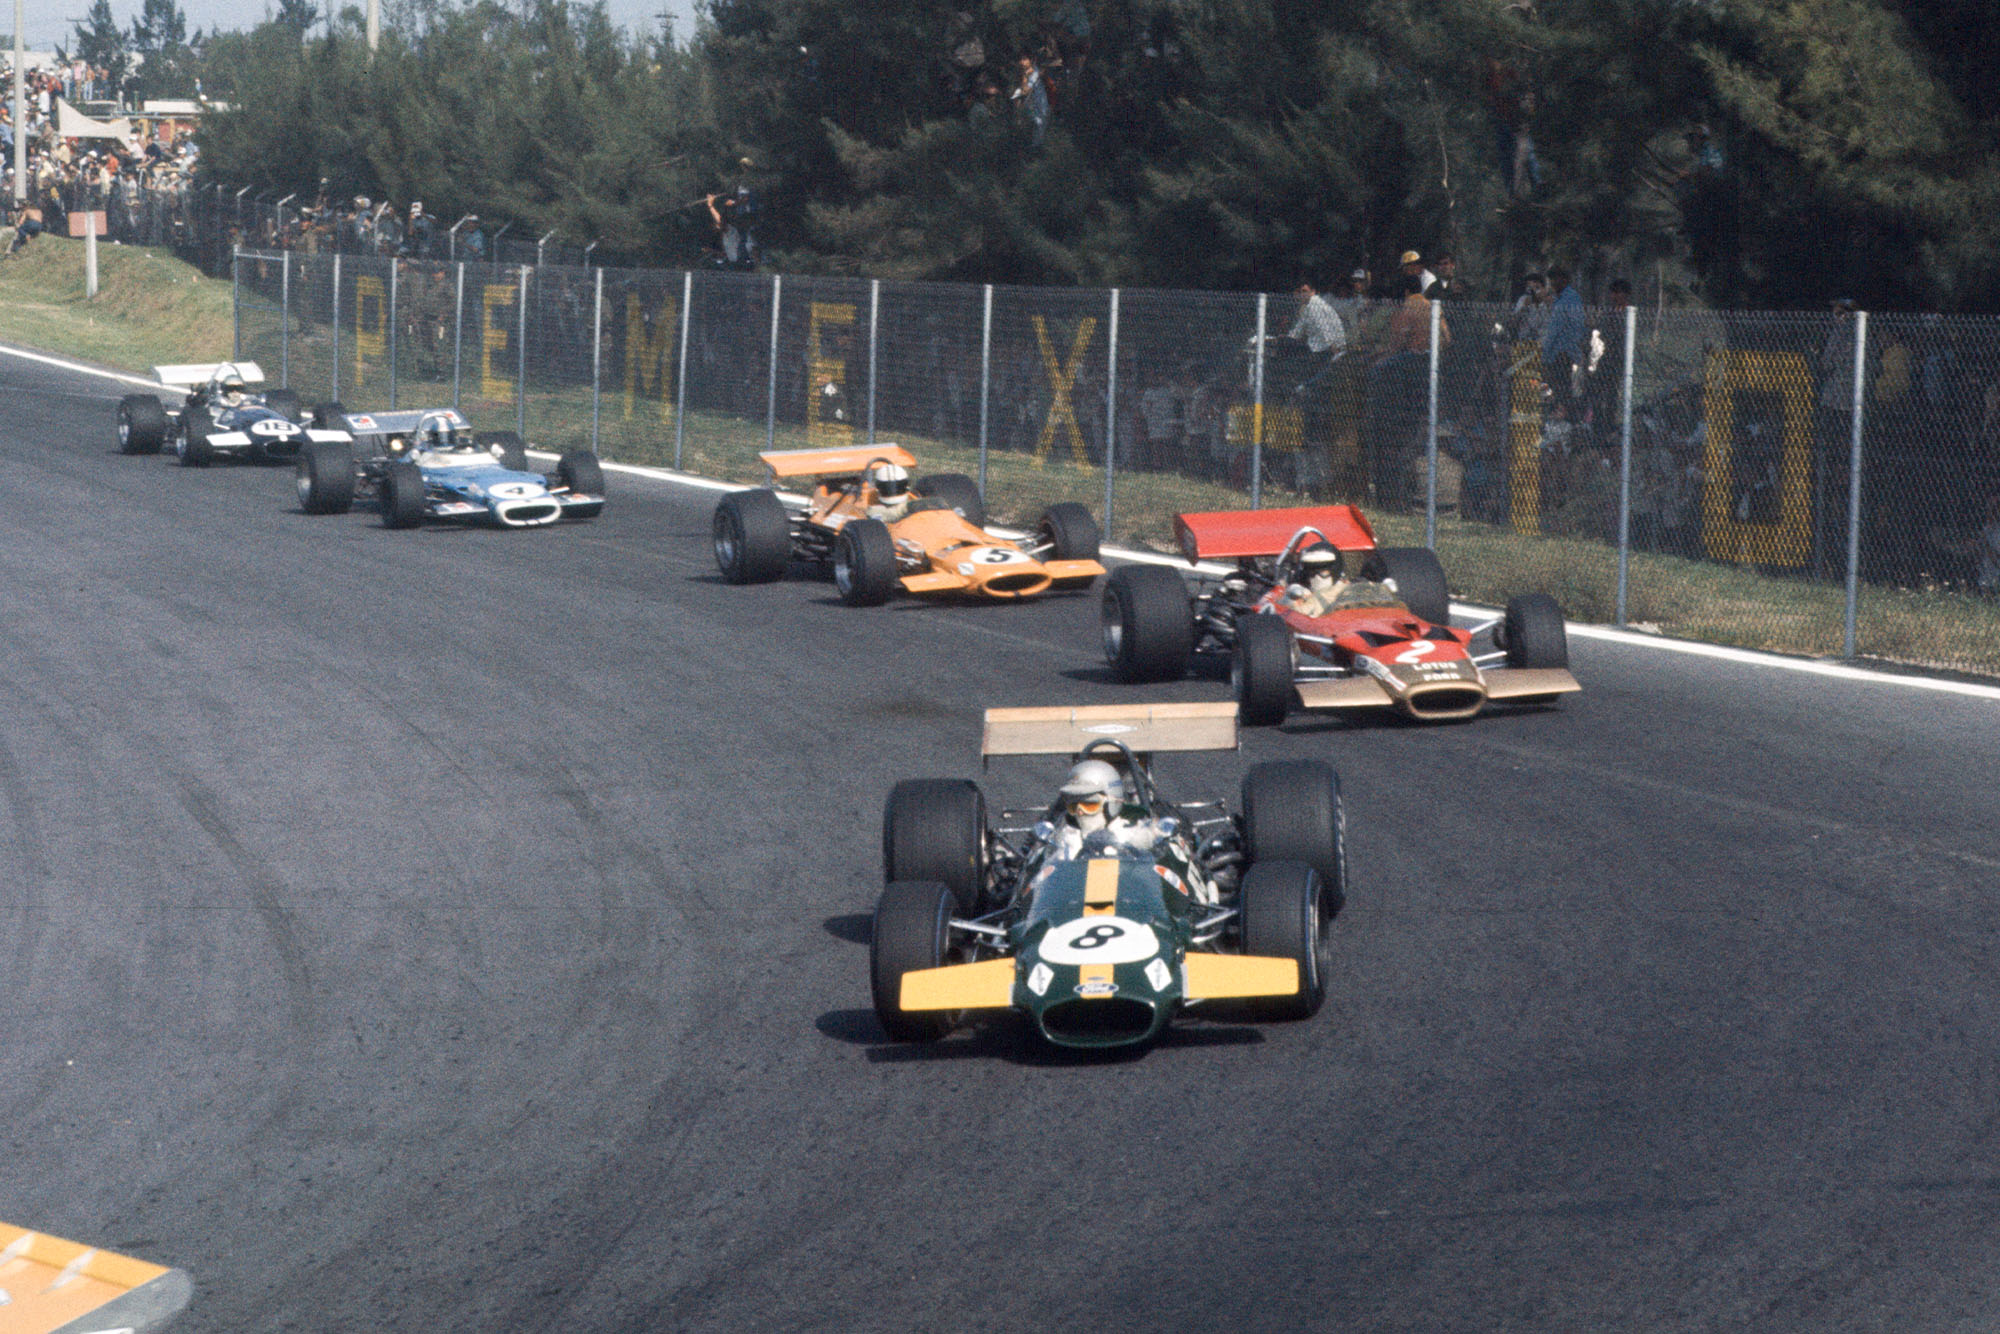 Jack brabham leads the field at the start of the 1969 Mexican Grand Prix.